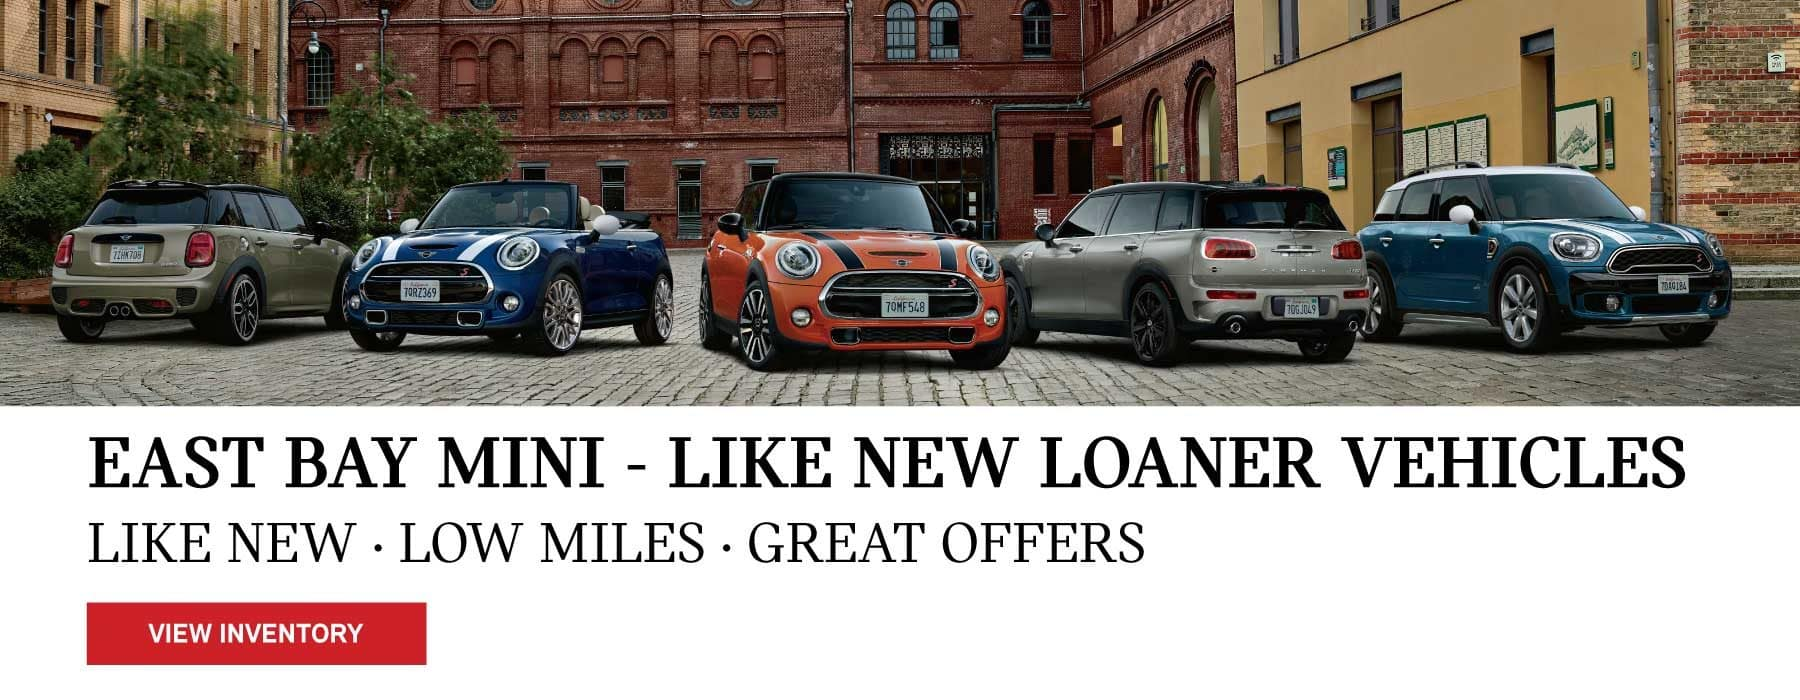 EAST BAY MINI - LIKE NEW LOANER VEHICLES. LIKE NEW. LOW MILES. GREAT OFFERS. VIEW INVENTORY BUTTON.